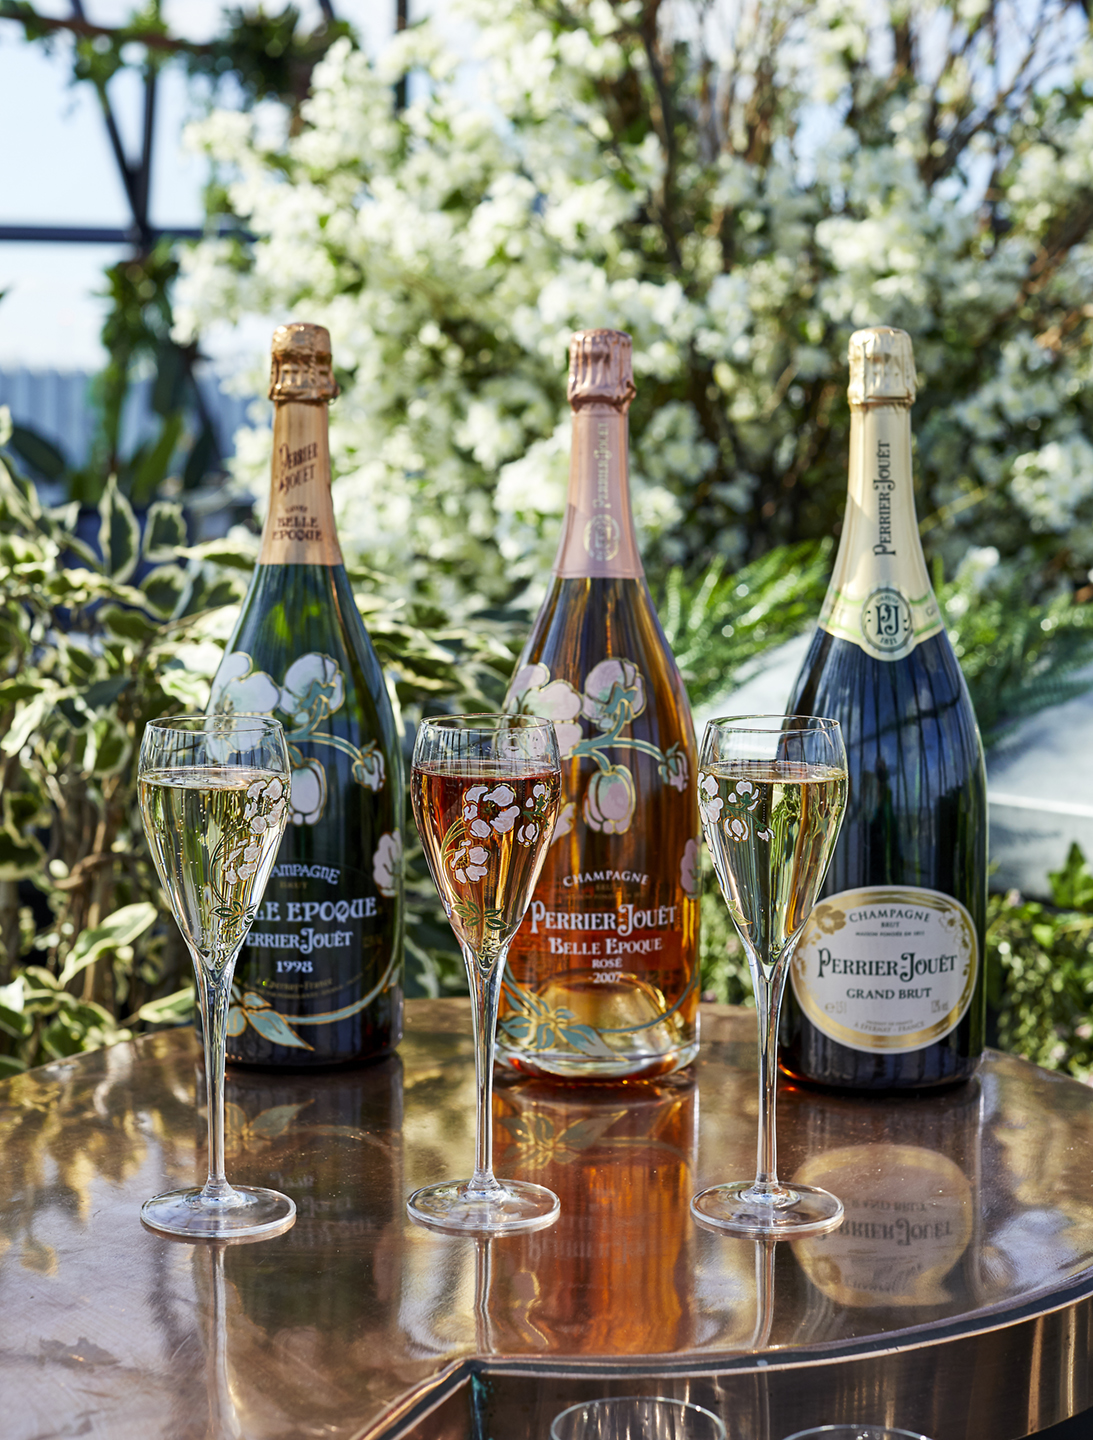 The Table of Tastes by Perrier-Jouët